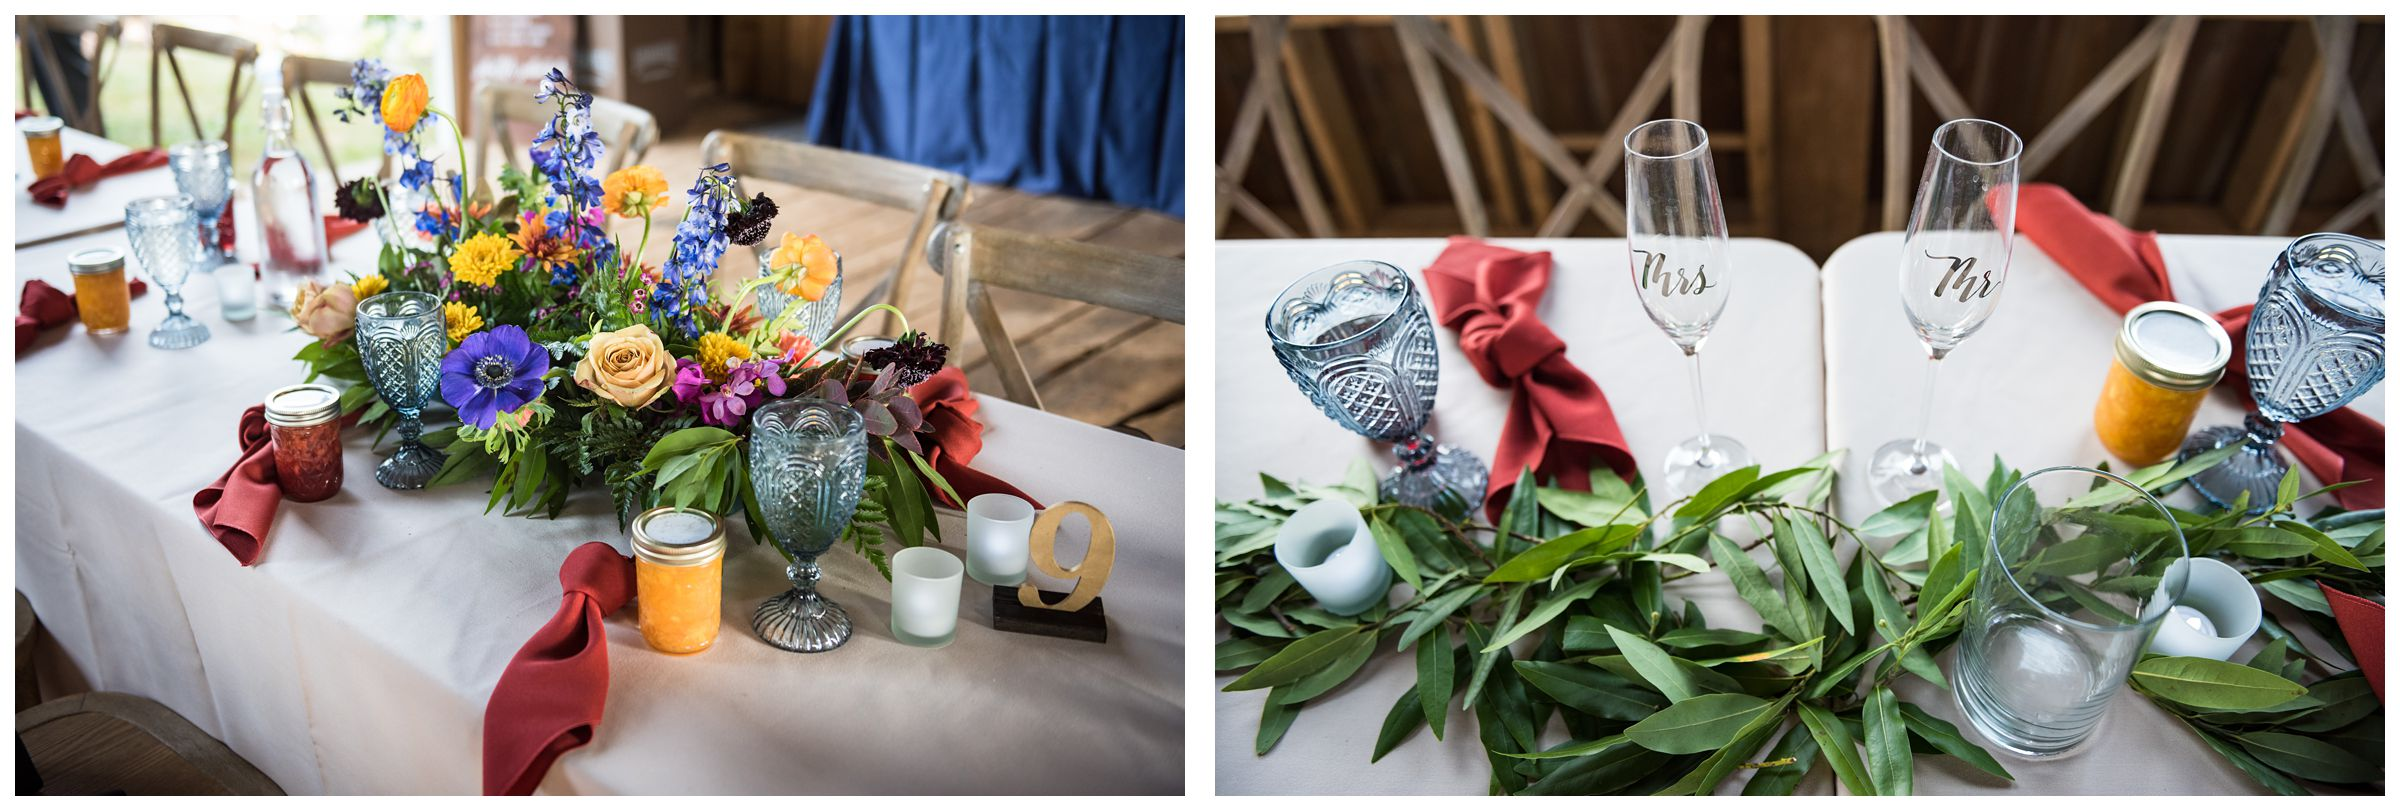 rustic Lancaster barn wedding reception with greenery and fall colors at family farm in central Ohio